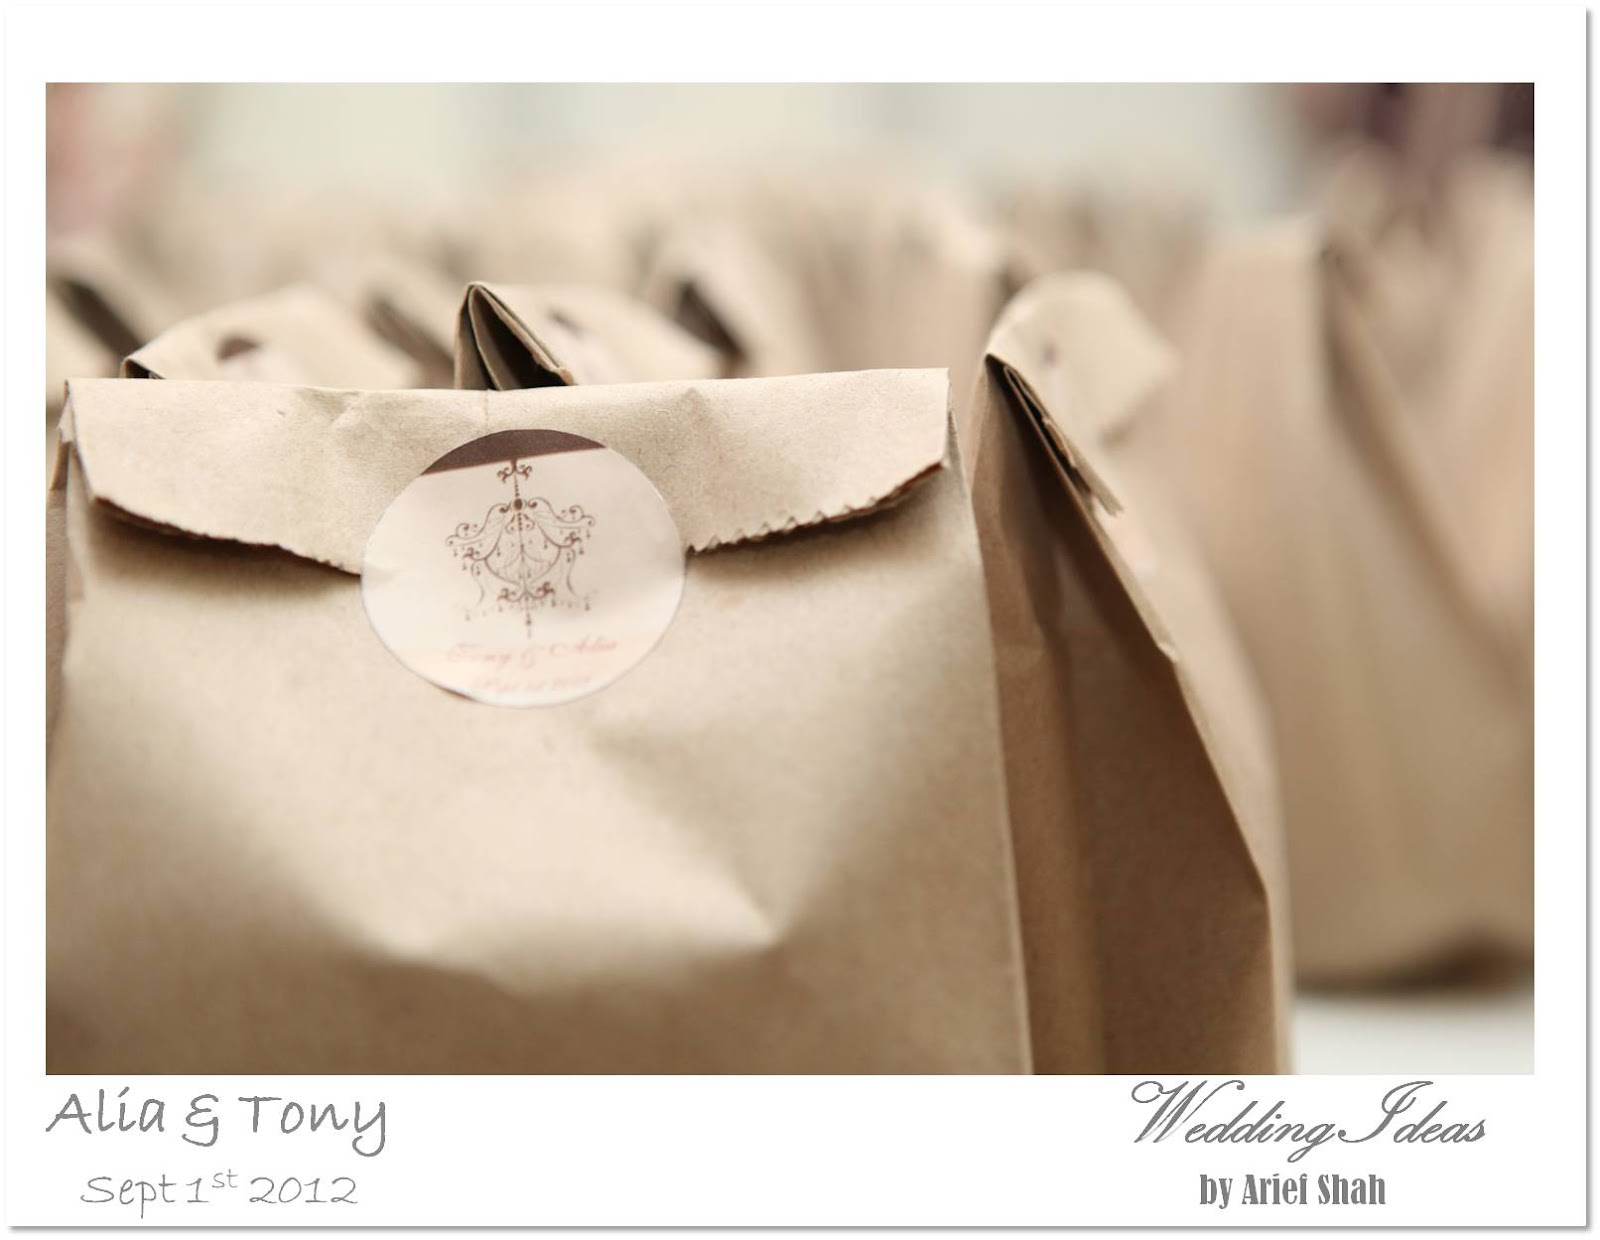 Wedding ideas teratak cinta by wedding ideas for Idea door gift jimat